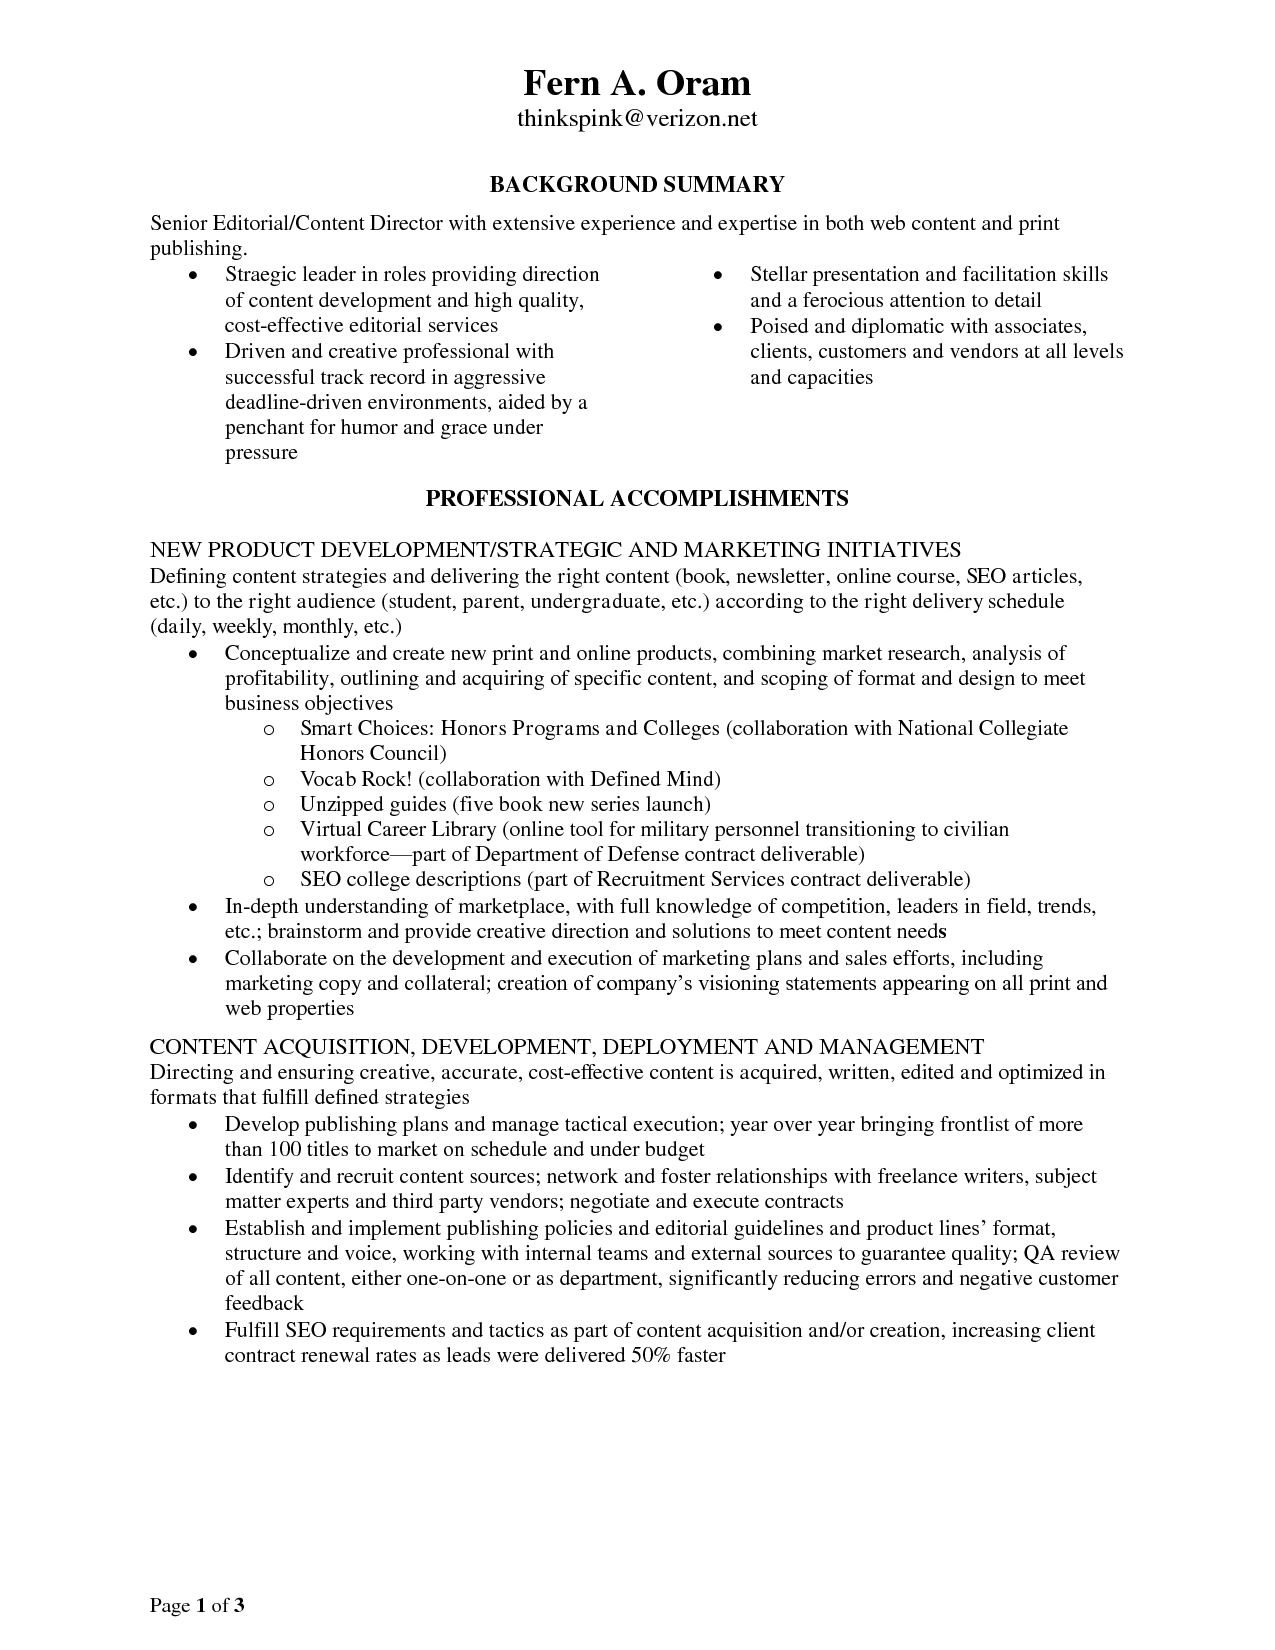 Template Curriculum Vitae Monster Resume Templates Free Monster Resume Templates Free